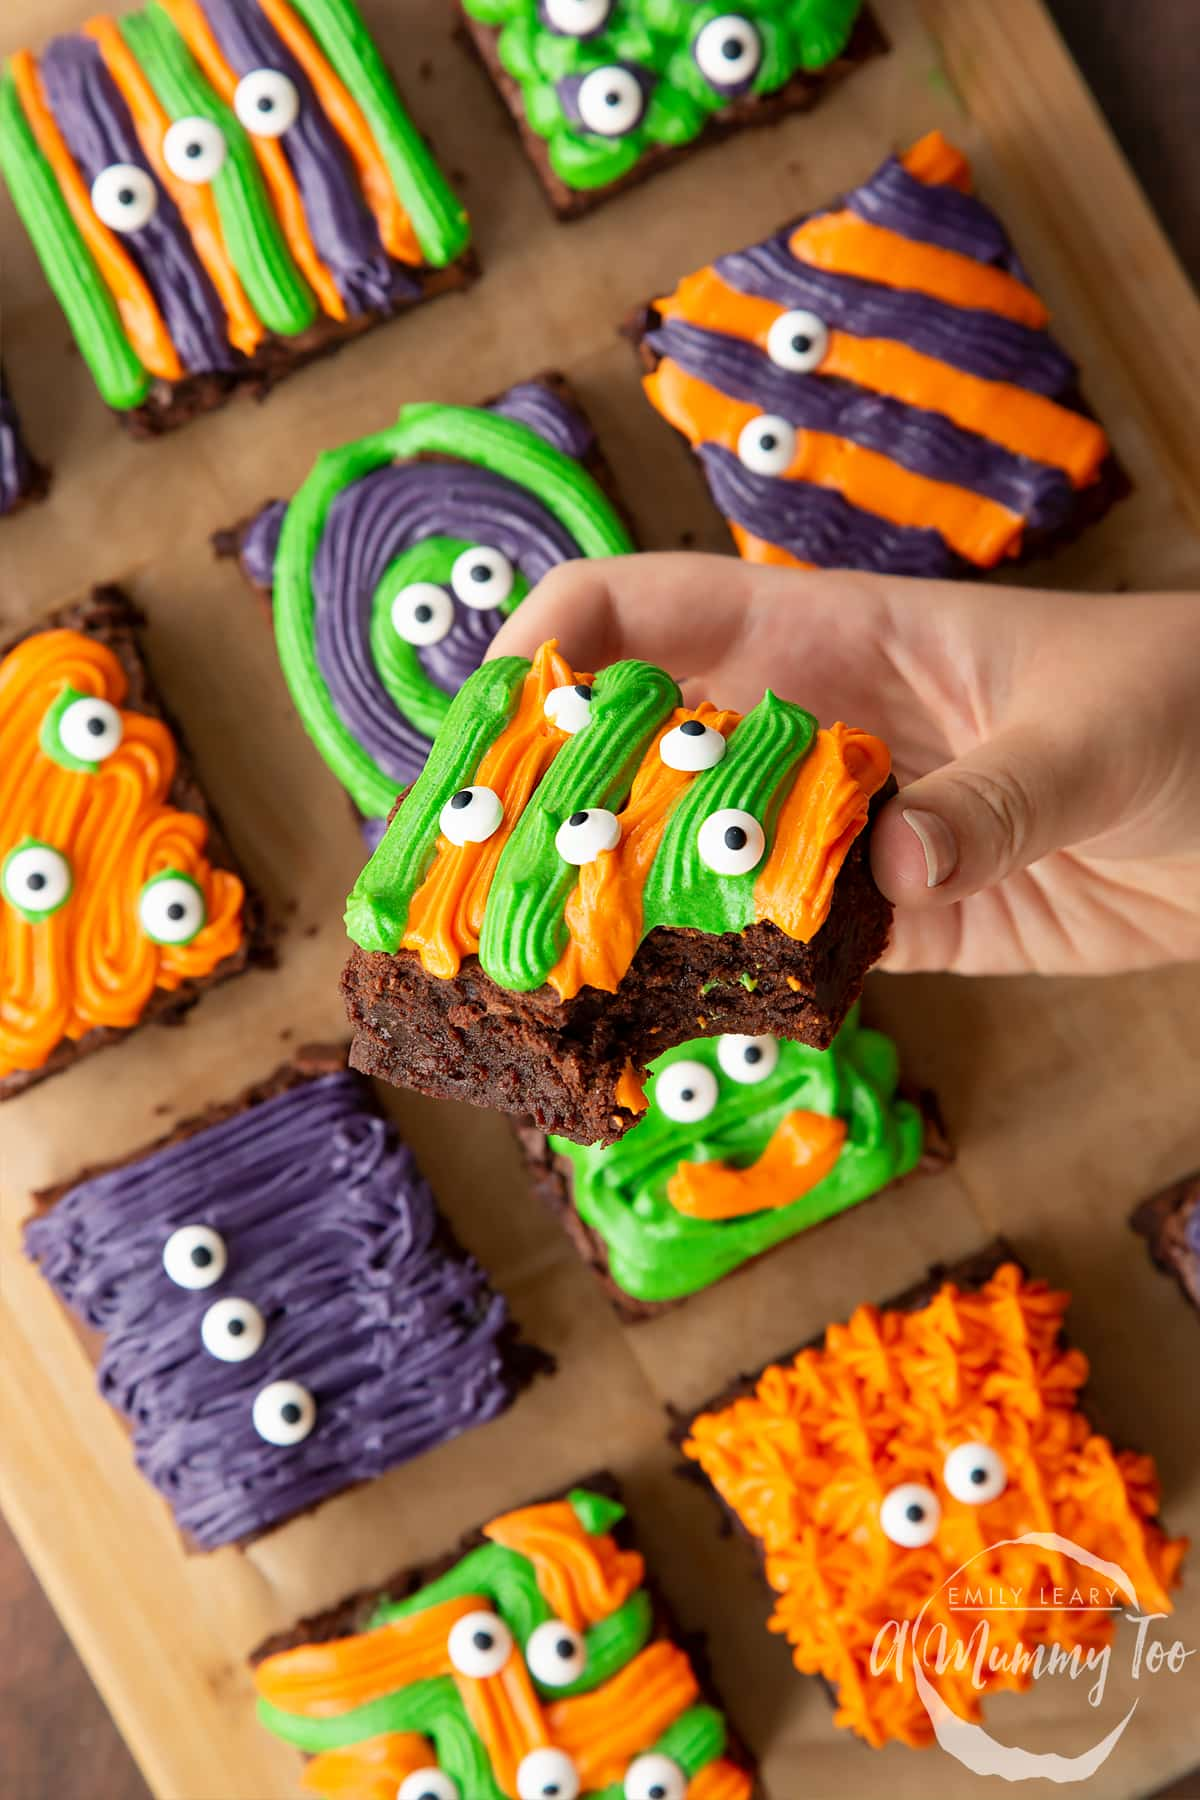 Halloween brownies arranged on a board lined with baking paper. A hand holds a purple and green frosted brownie with candy eyes.